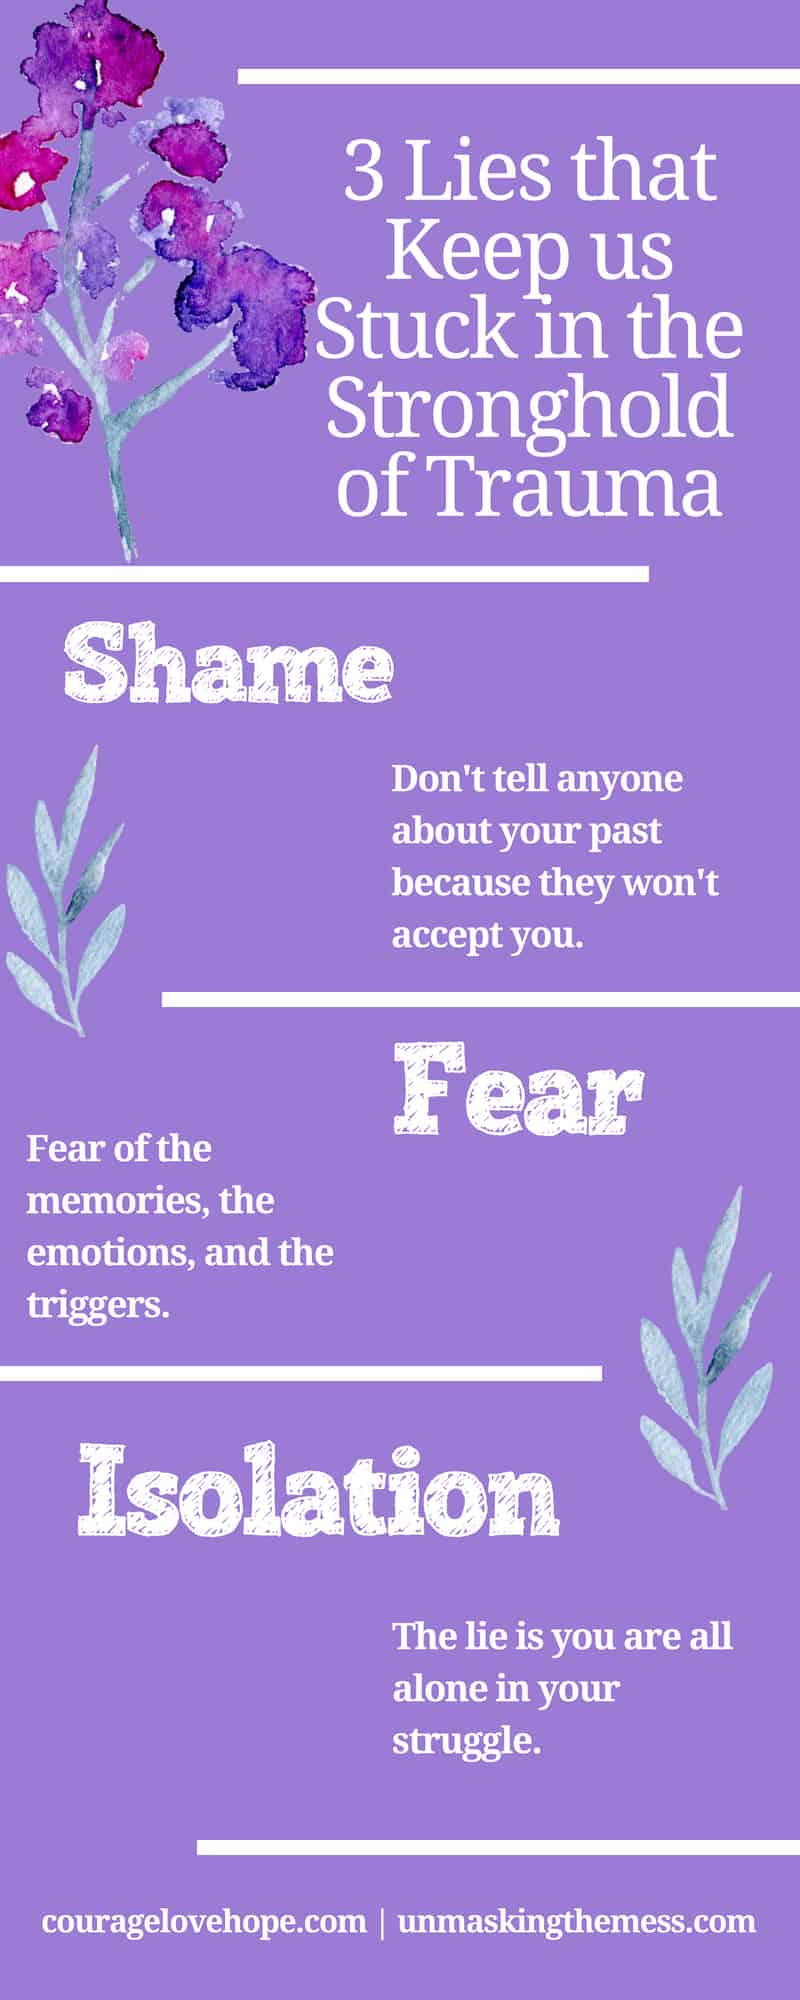 Want to Recover from Trauma: Watch for These 3 Lies. All of us have been through tough times and carry the pain with us. We can make strides to recover from trauma when we notice these three lies. #trauma #recovery #healing #triggers #emotional #survivor #overcomer